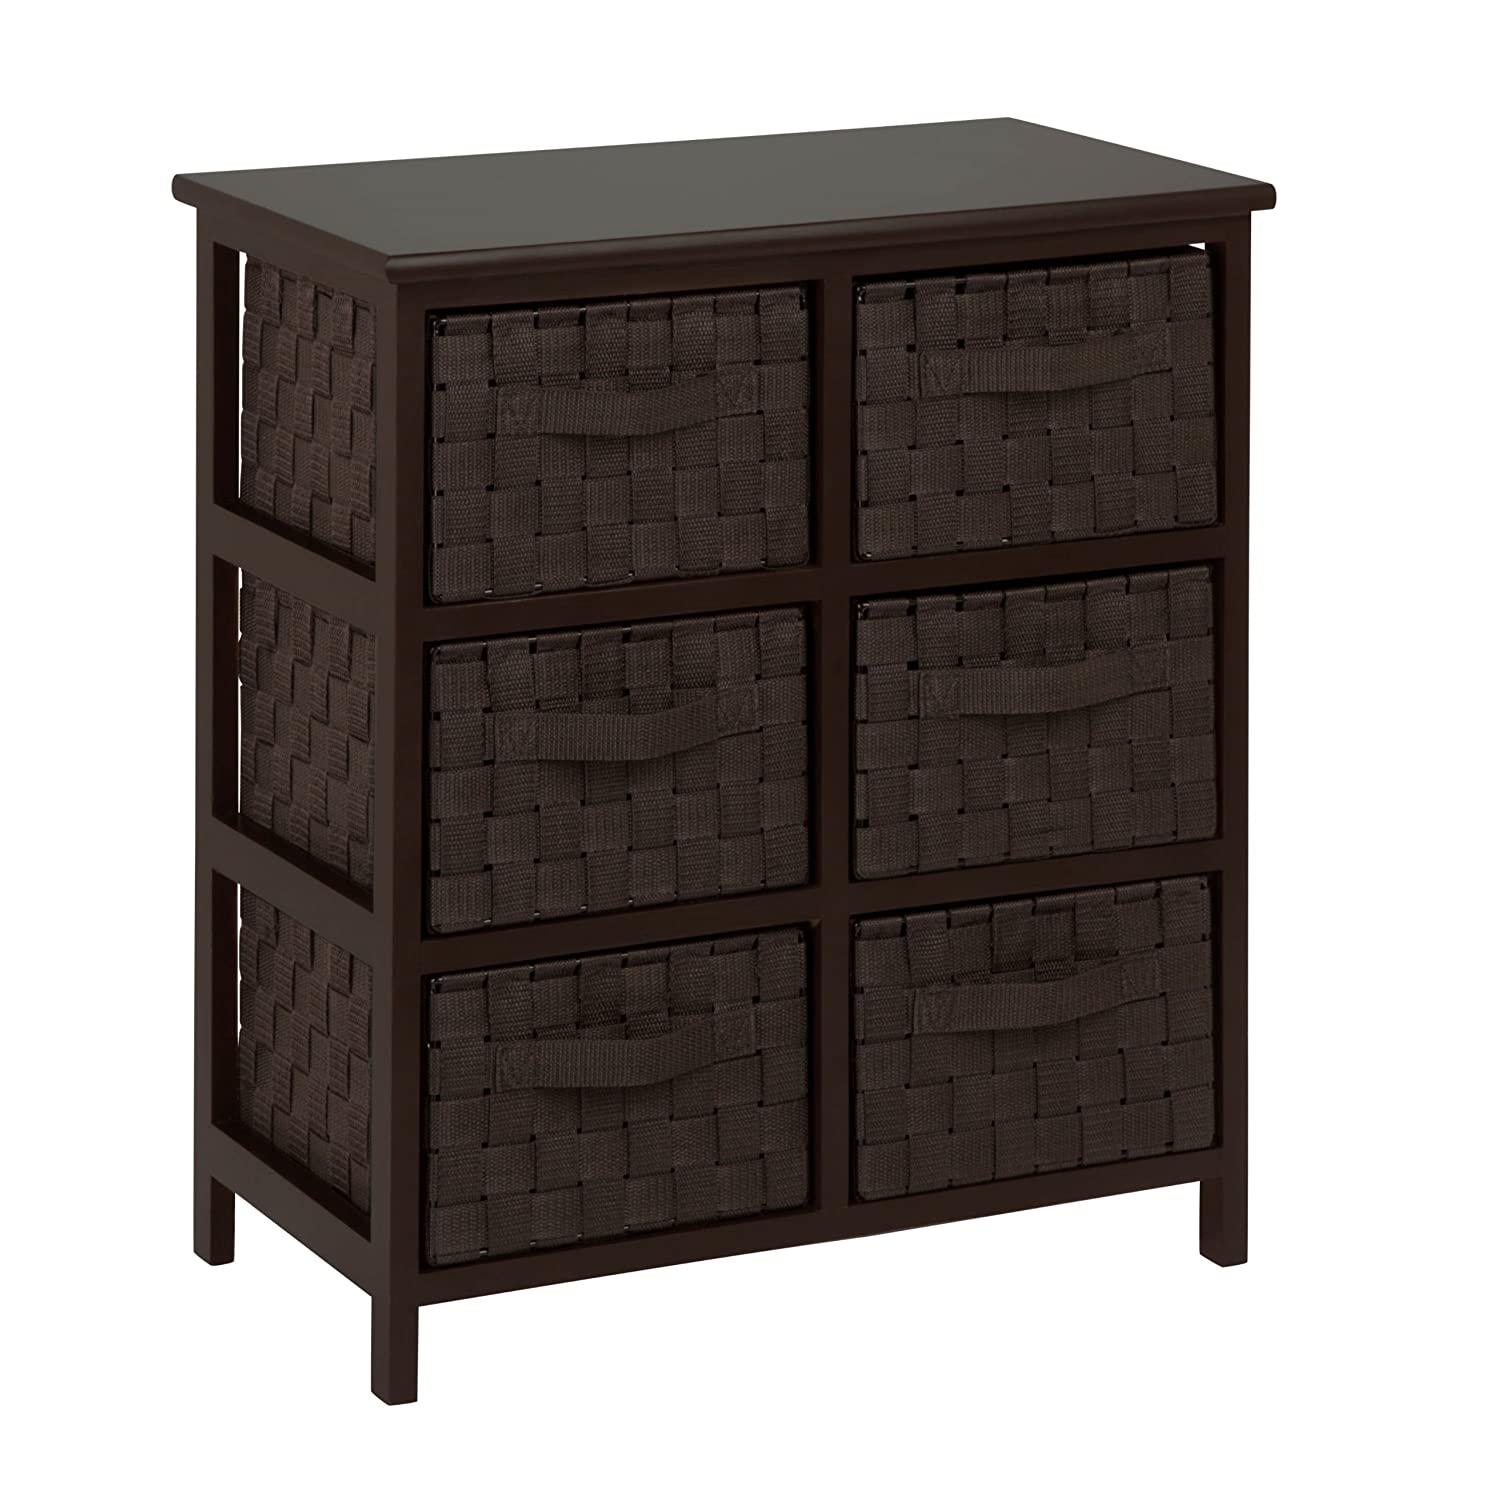 Espresso Black Honey-Can-Do TBL-03758 6-Drawer Storage Chest with Woven-Strap Fabric, Brown, 24-Inch